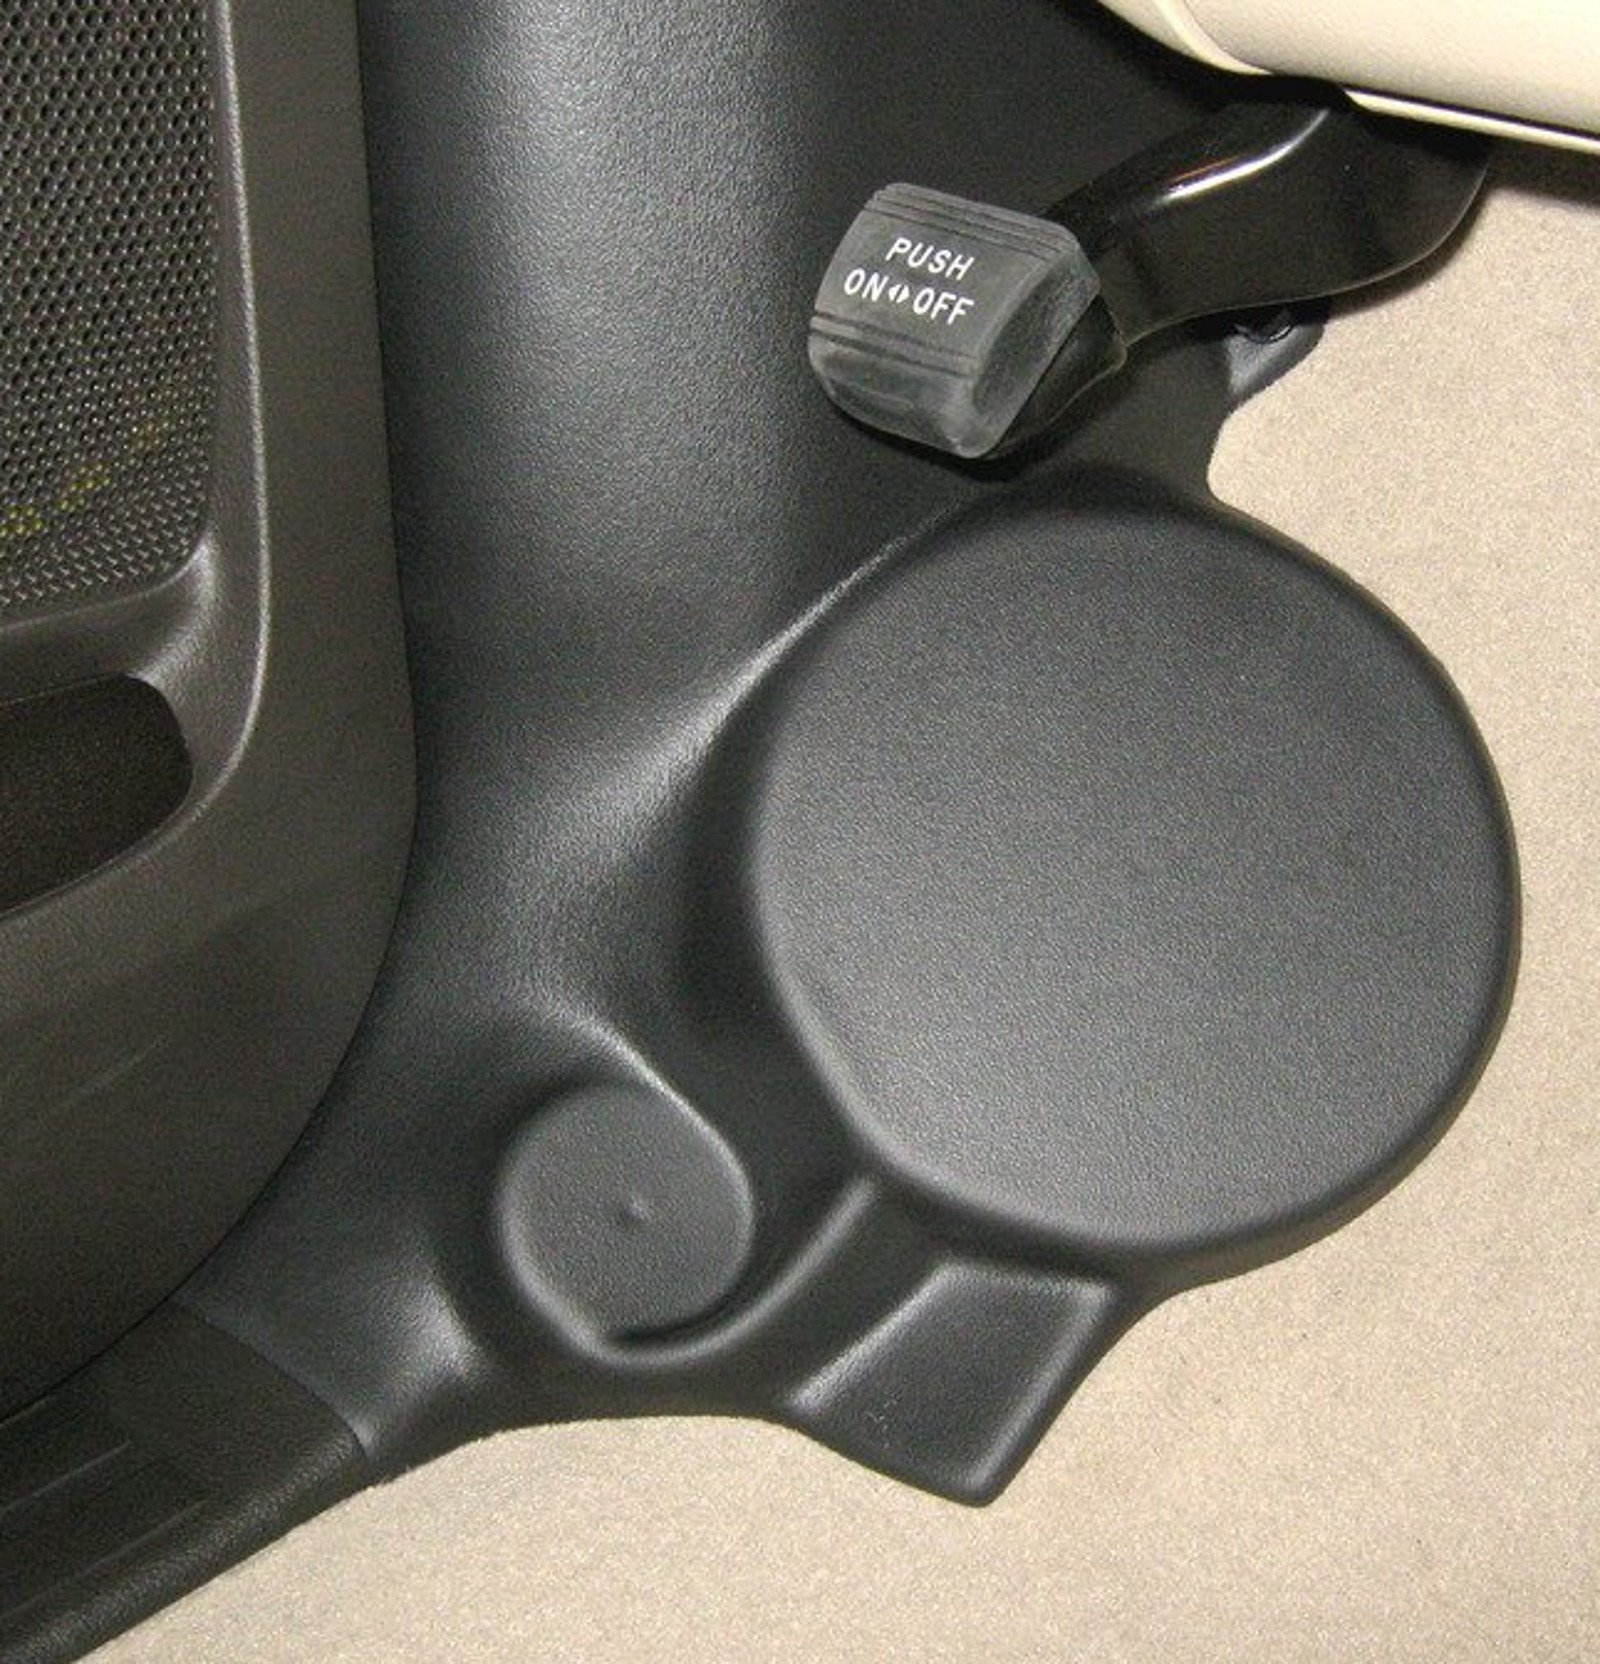 Kick Panel Speaker Mounts for Toyota SEQUOIA & TUNDRA CREWMAX Regular & Double Cab by Q-Forms (Image #1)